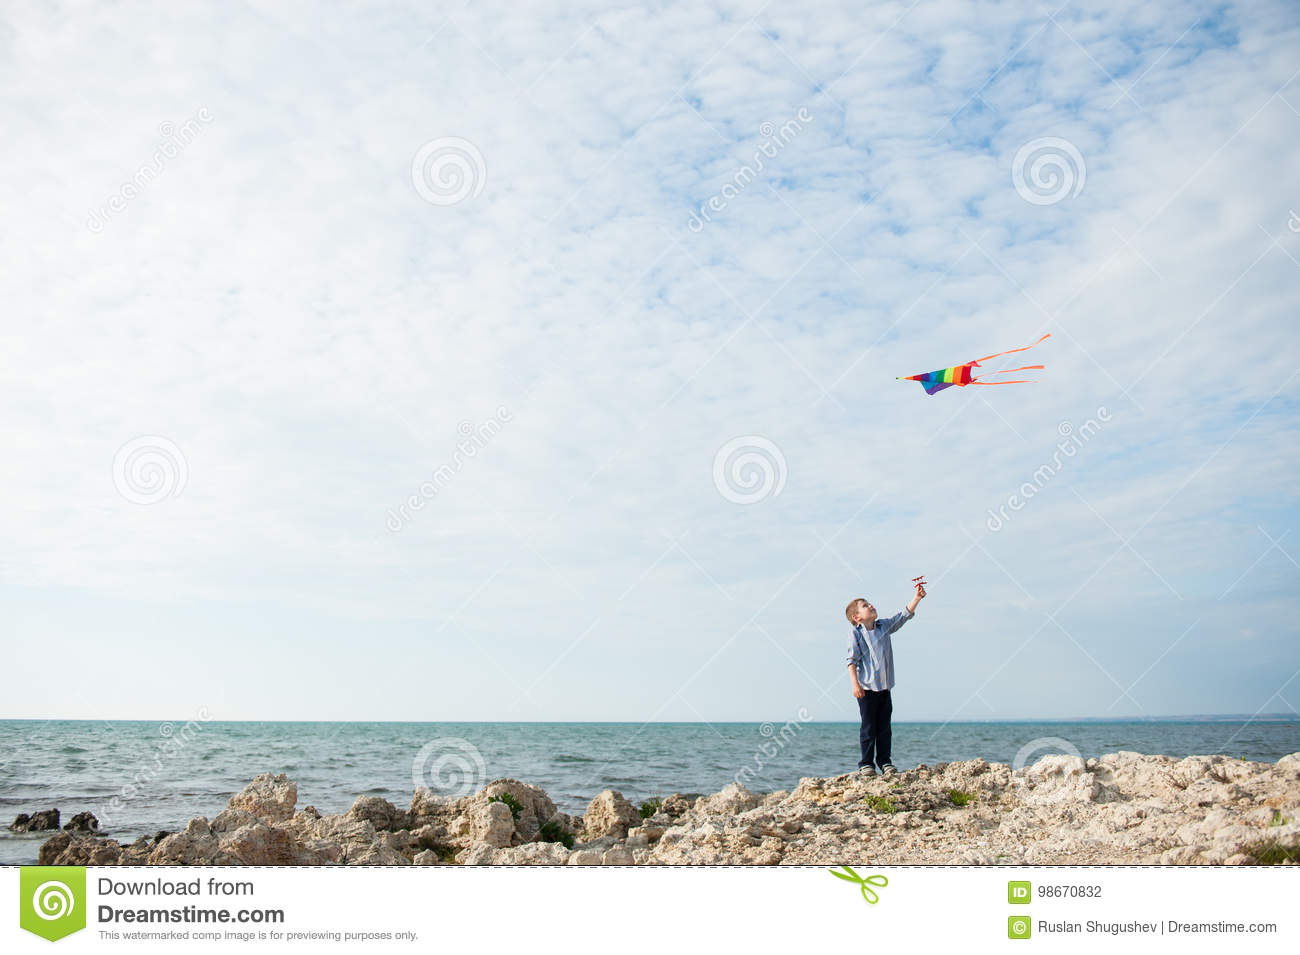 One Cute Small Boy Holding A Kite Flying In The Sky On The